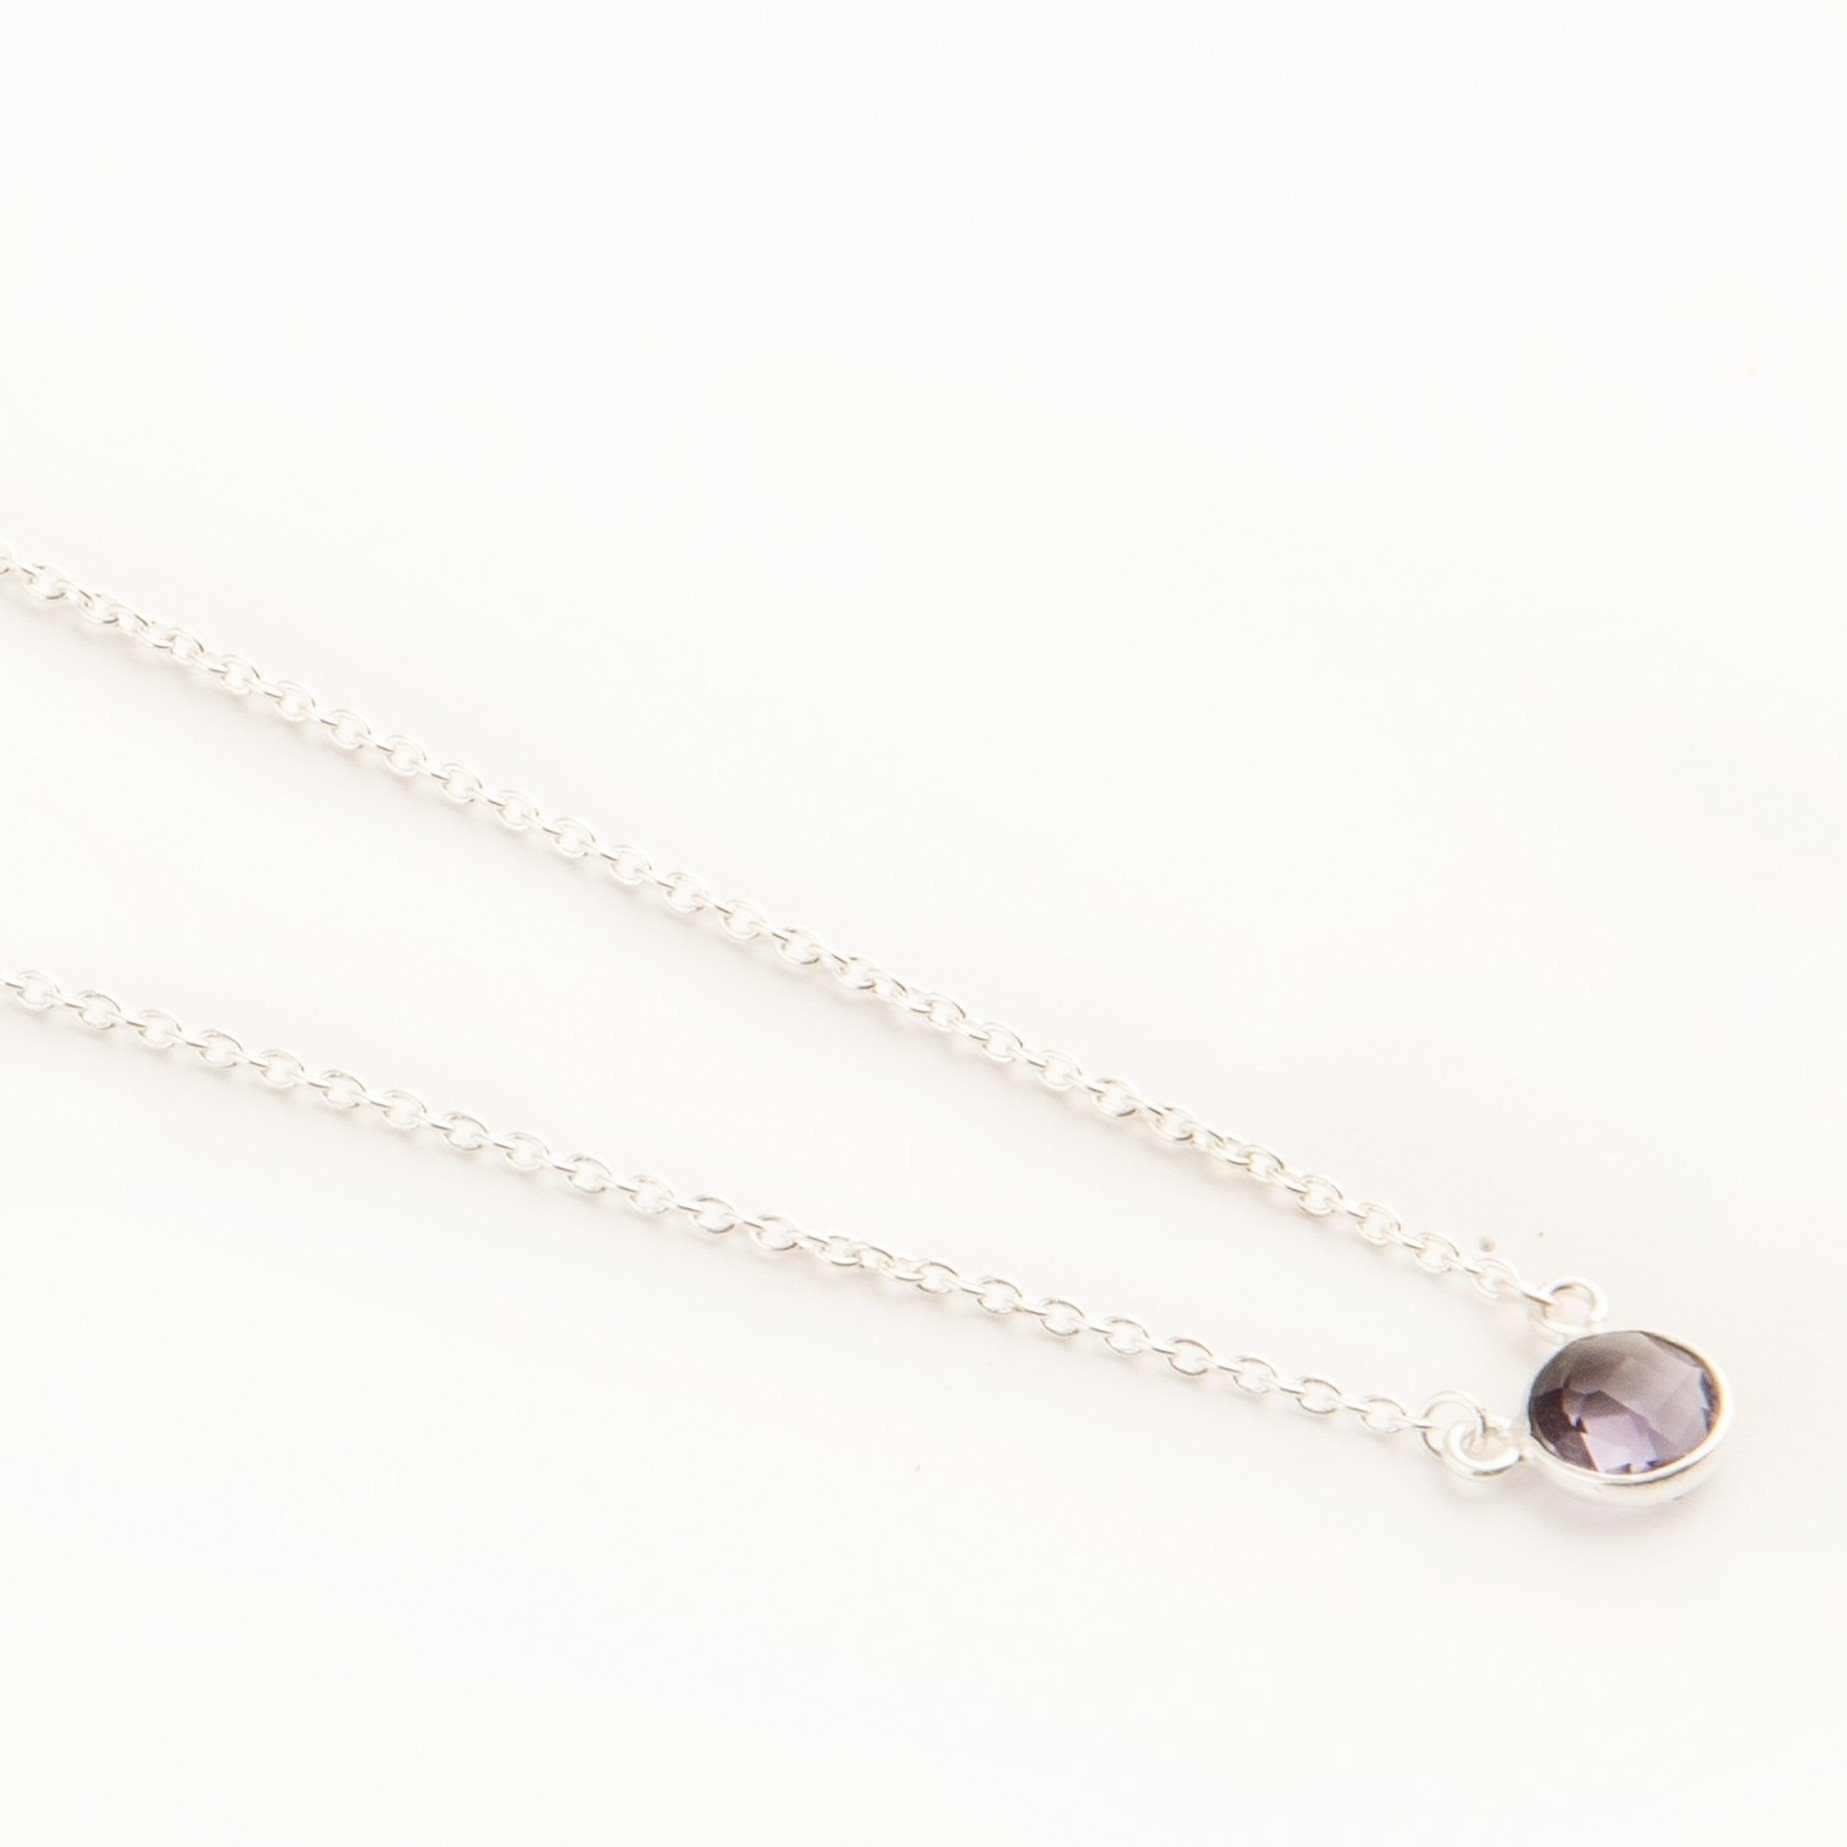 Adele mini silver round chain in Amethyst - Neckpieces